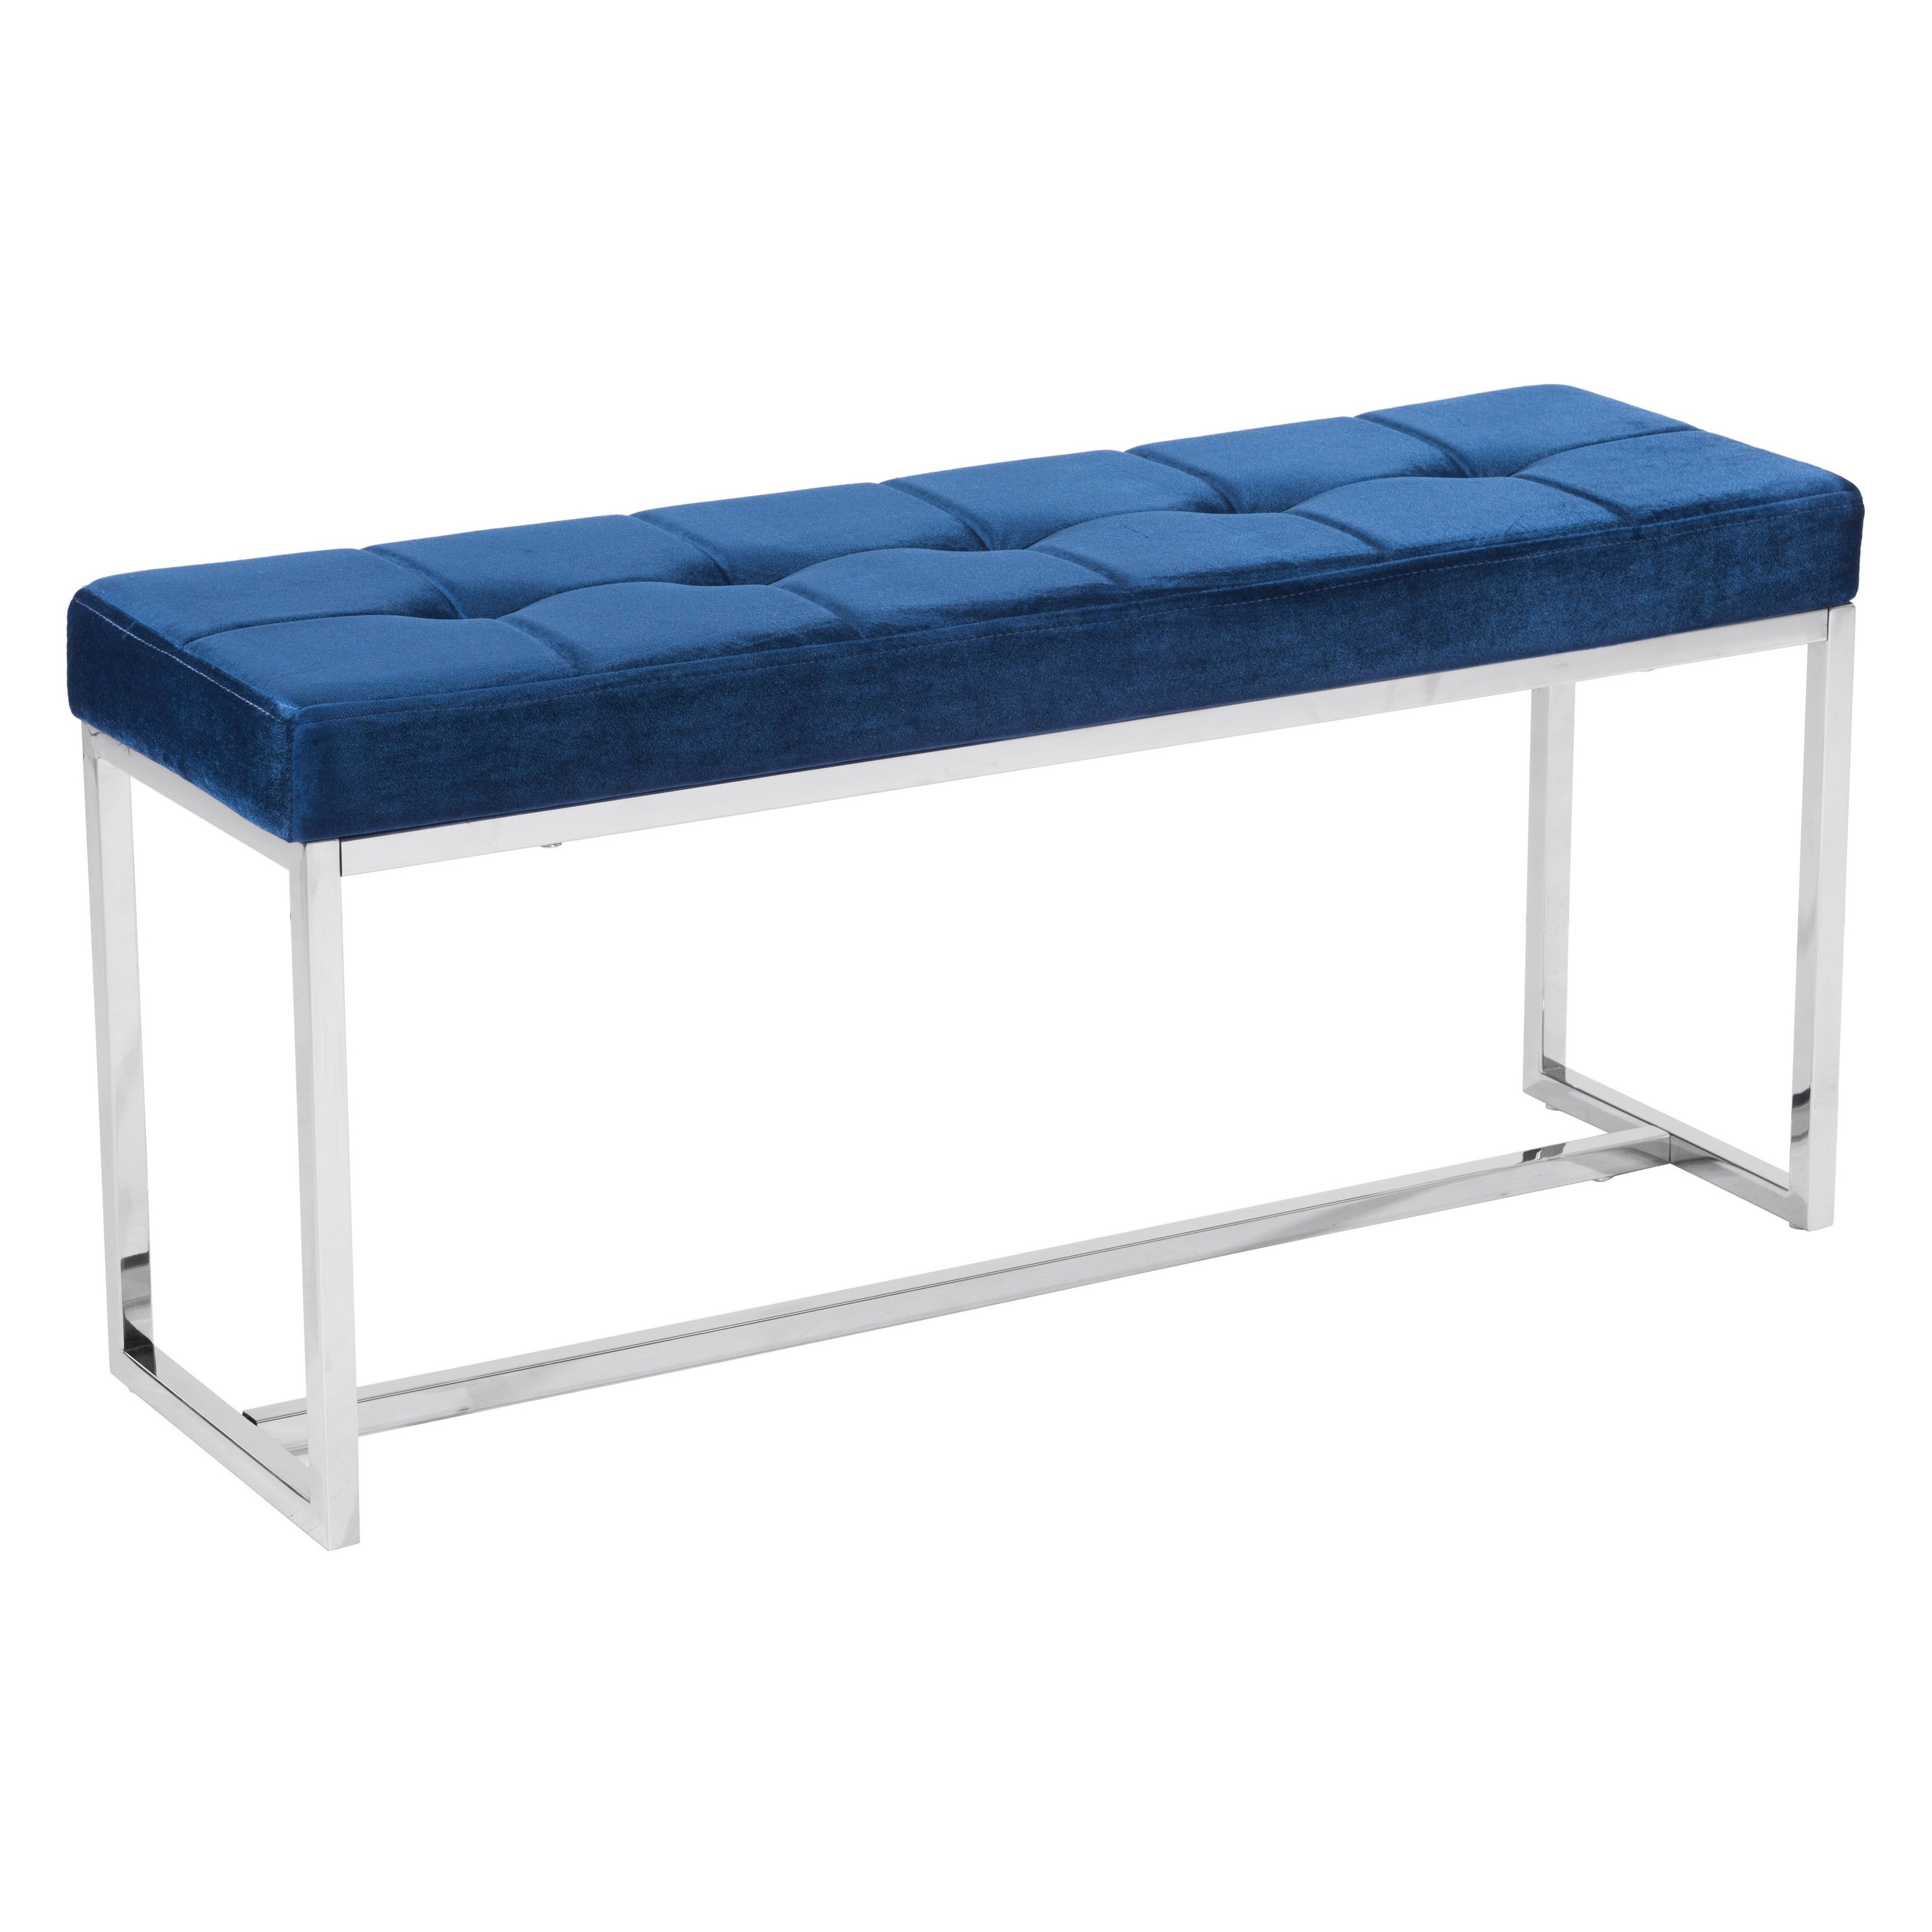 Zuo Modern Bench Part - 20: Zuo Synchrony Modern Bench in Cobalt Blue Velvet Finish 100195